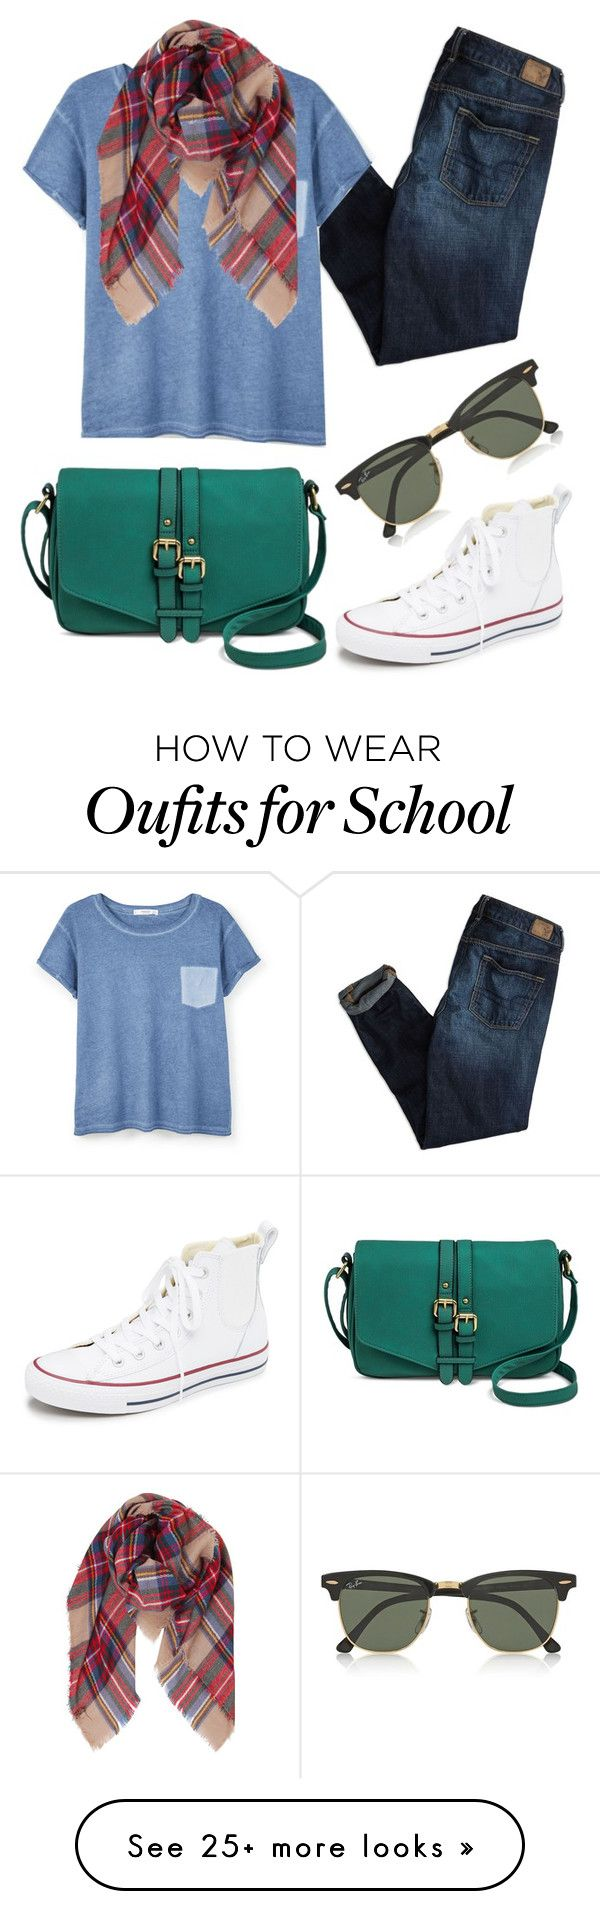 """School"" by kk-purpleprincess on Polyvore featuring American Eagle Outfitters, Converse, MANGO, Humble Chic, Merona and Ray-Ban"